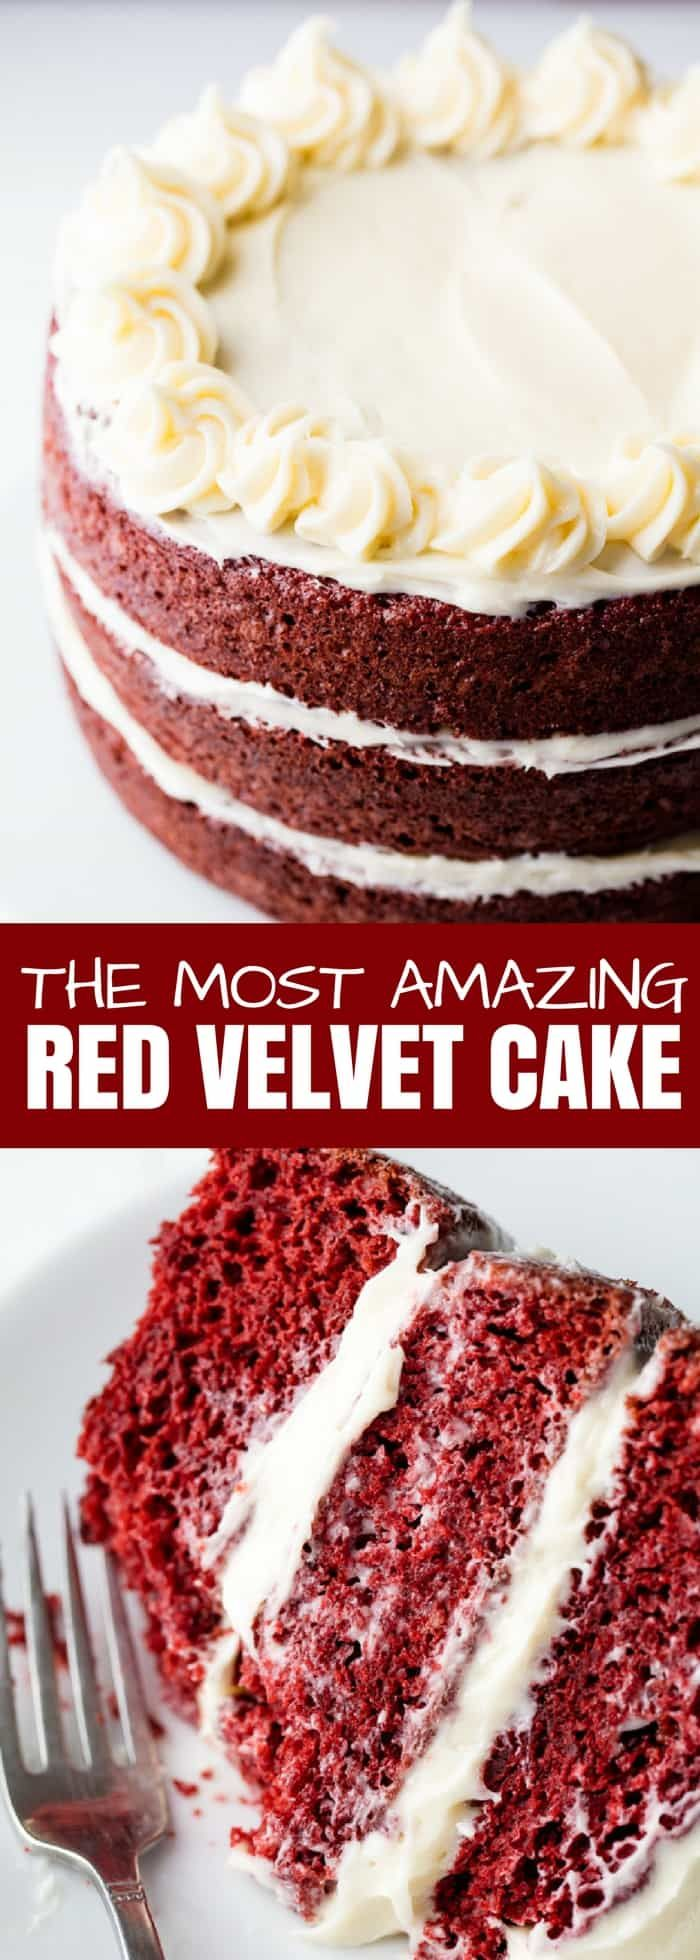 The Most Amazing Red Velvet Cake recipe is moist, fluffy, and has the perfect balance between acidity and chocolate. Top it off with cream cheeses frosting for the perfect Red Velvet Cake you've been dreaming of! #redvelvet #cake #dessert